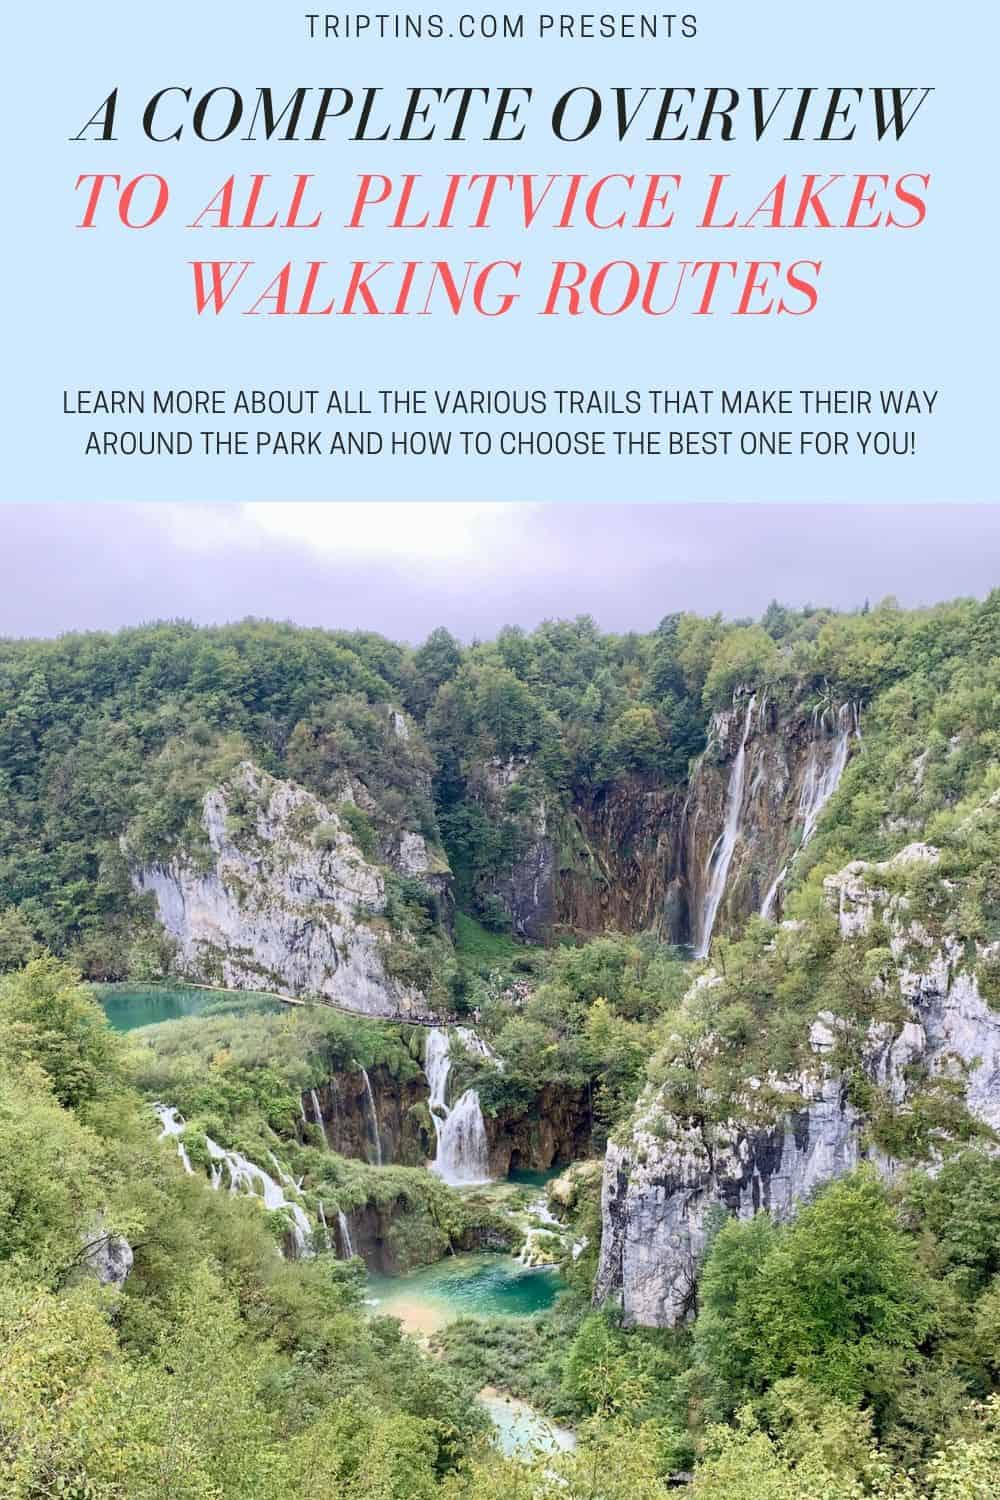 Plitvice Lakes National Park Walking Routes